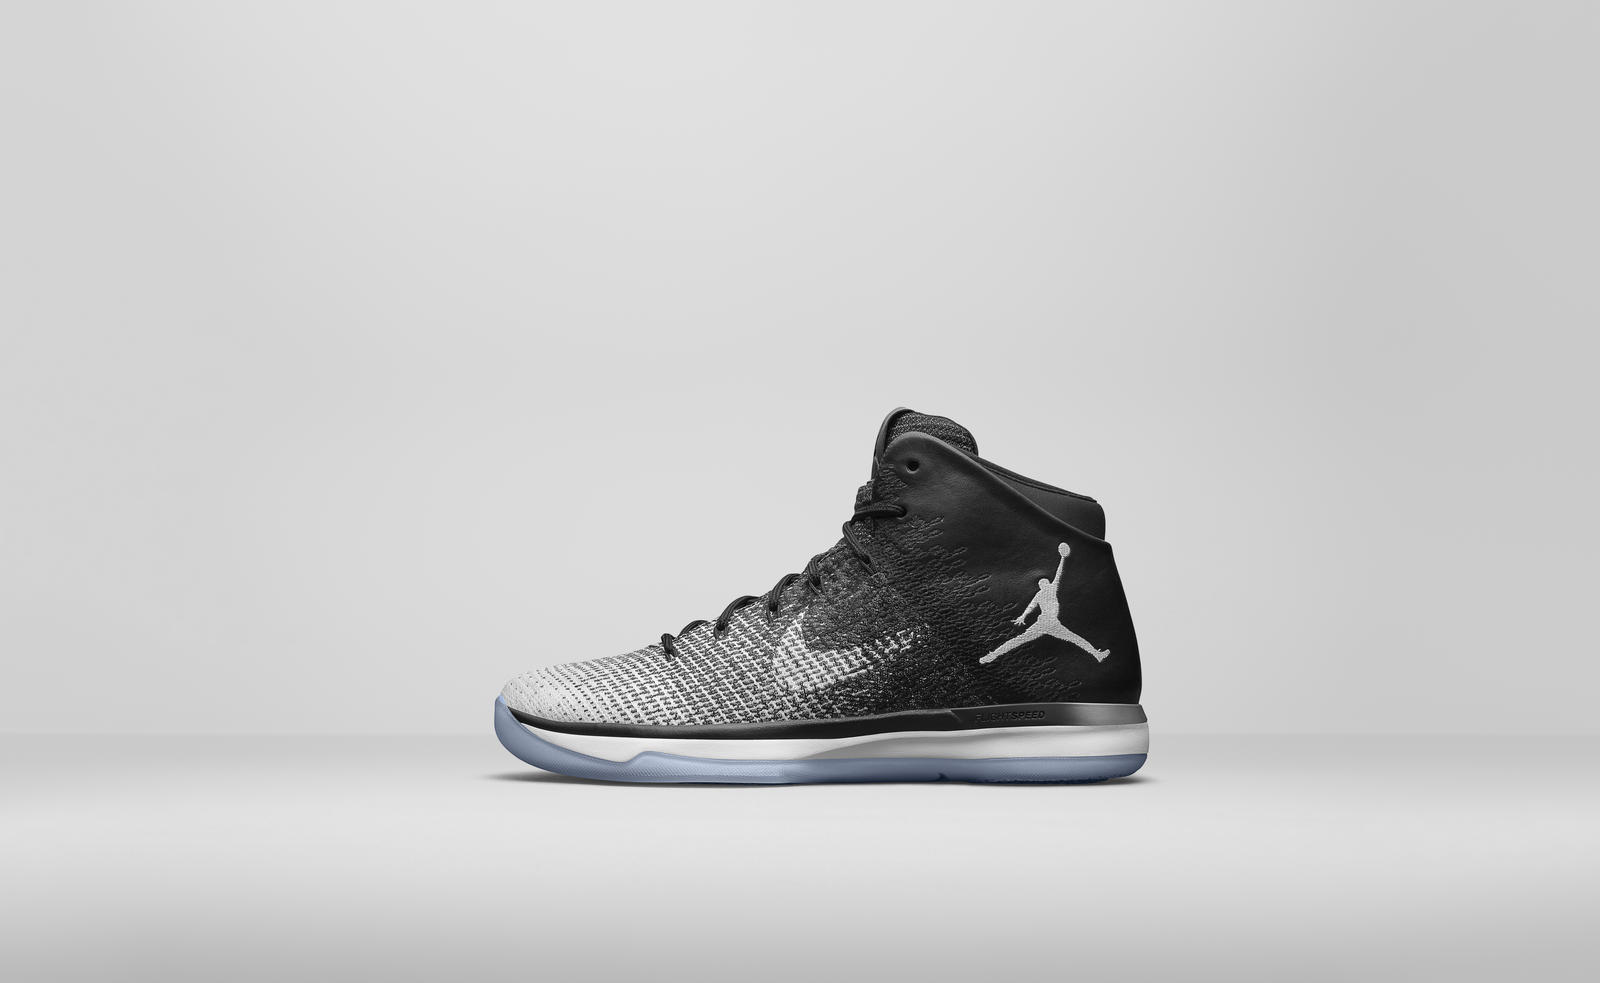 e3f5fccfae5 Jordan Brand Commemorates the Flight Guy - Nike News